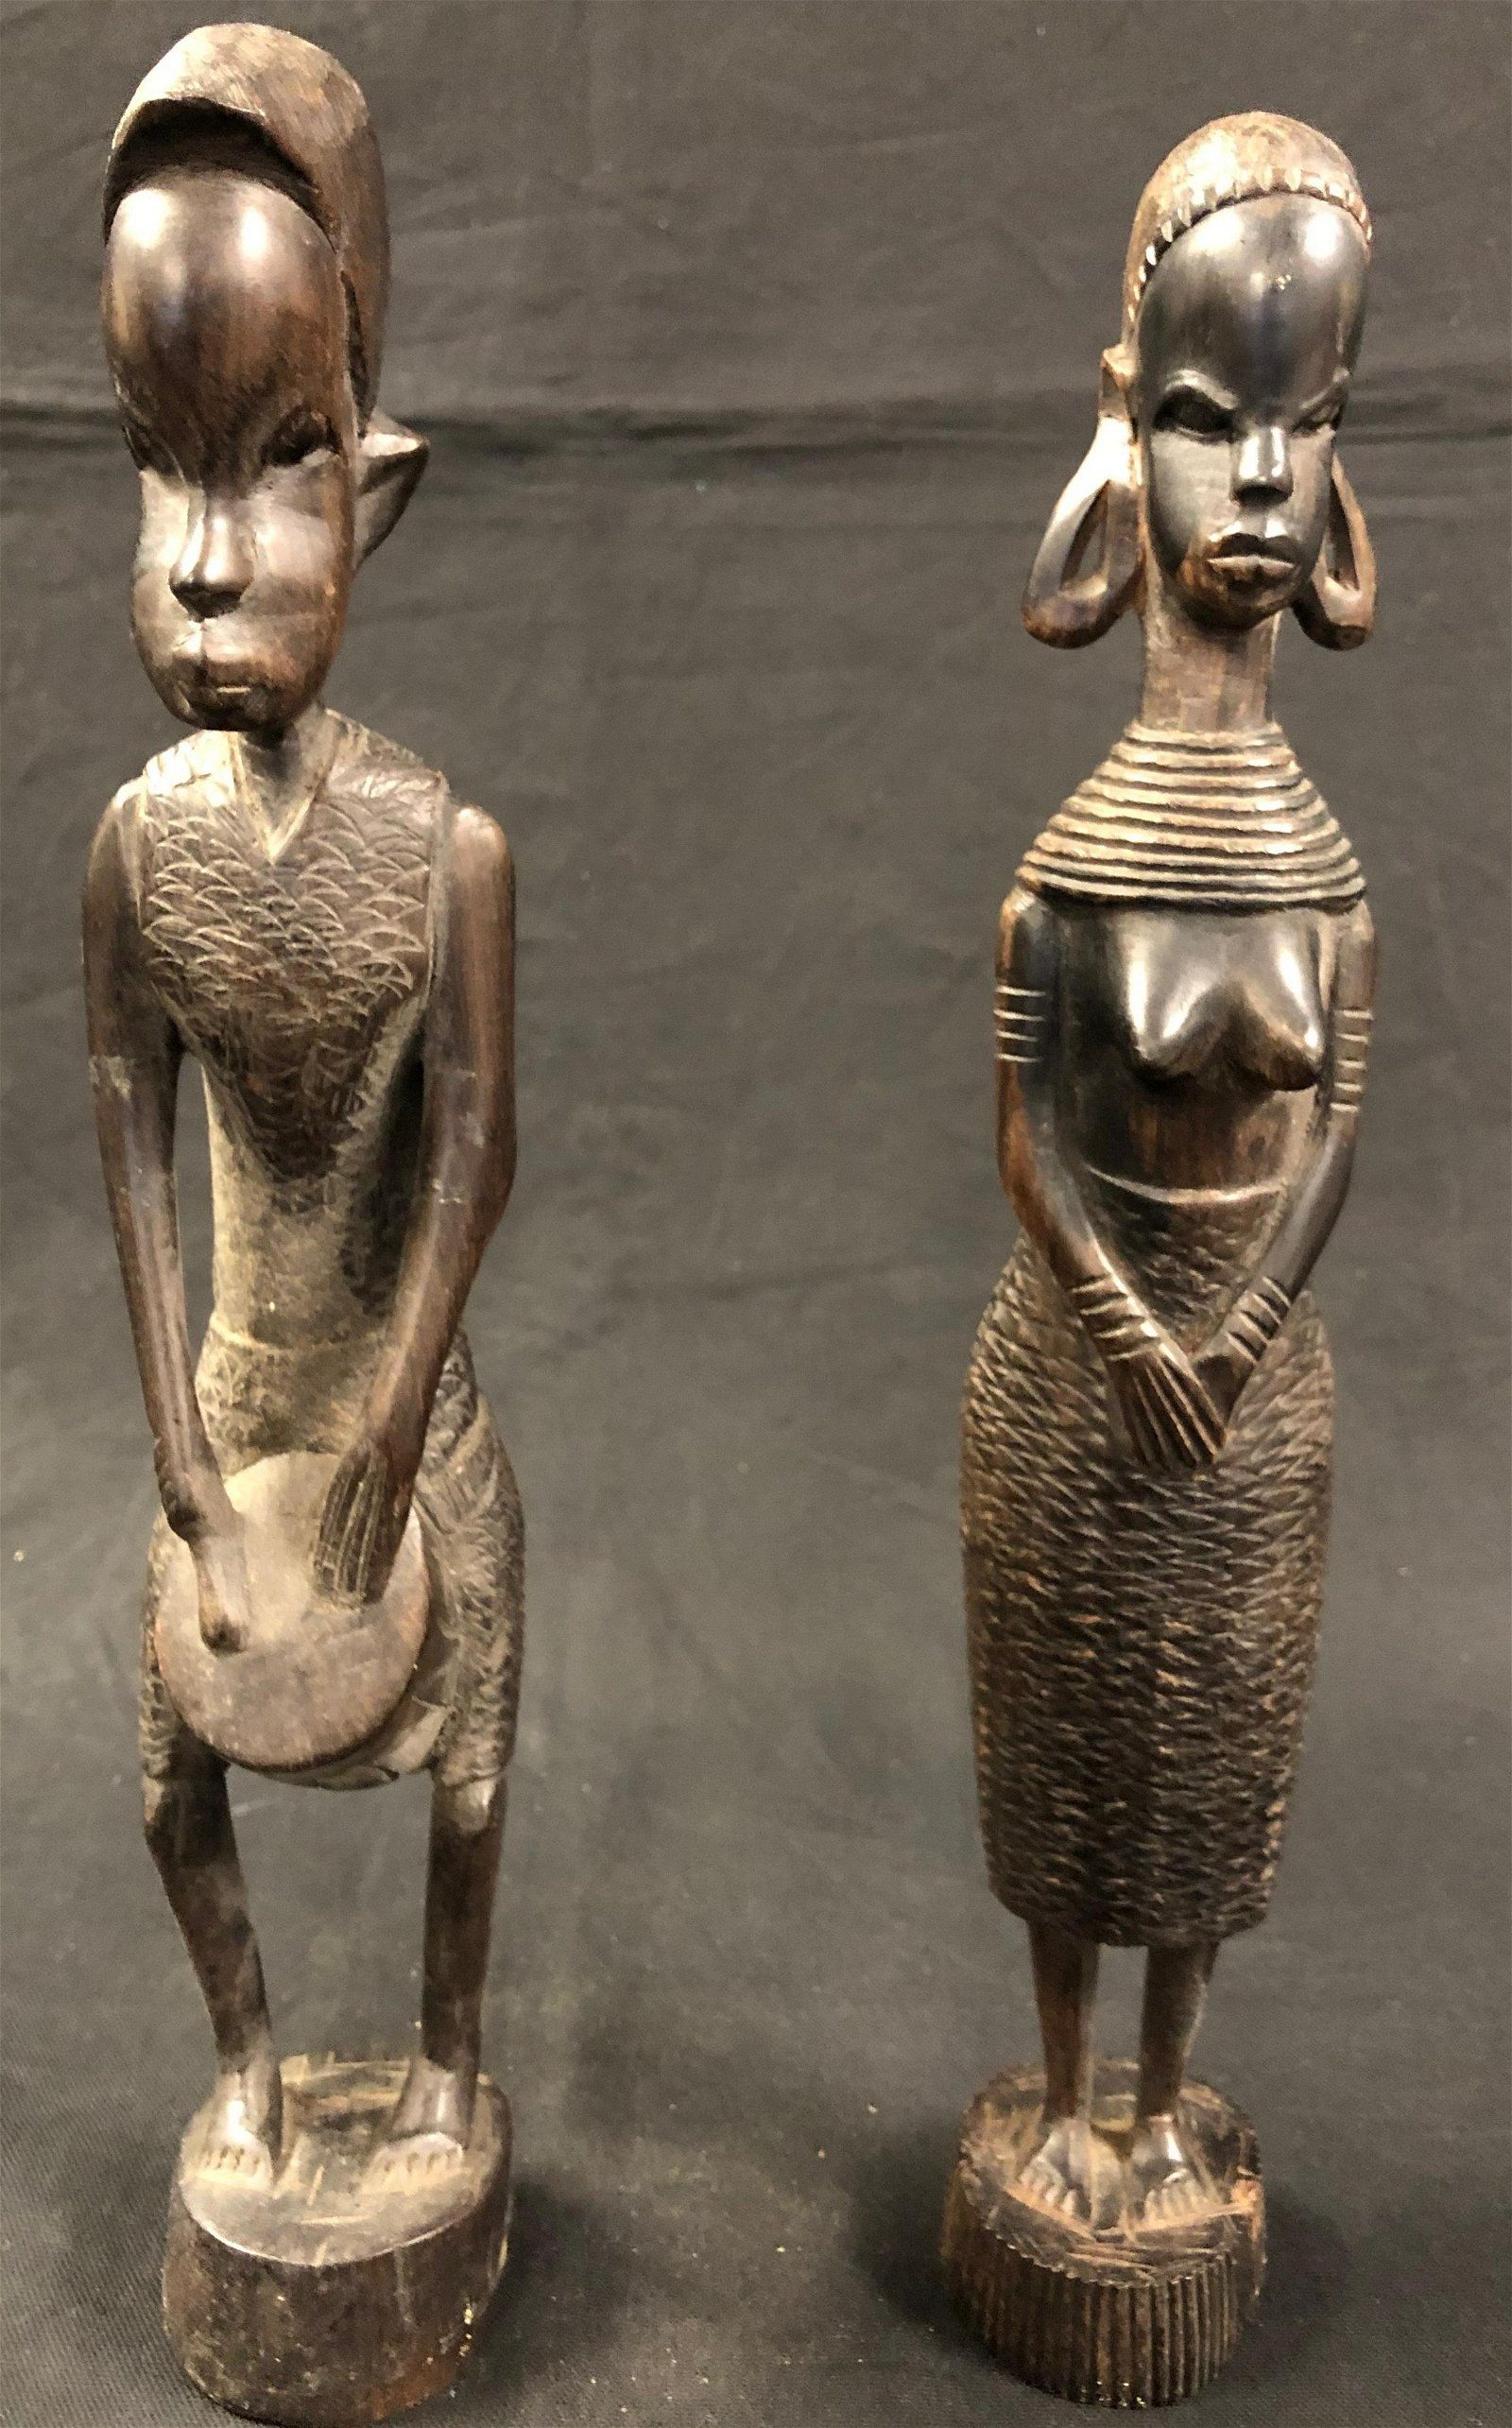 Primitive African Wood Carvings of a Couple